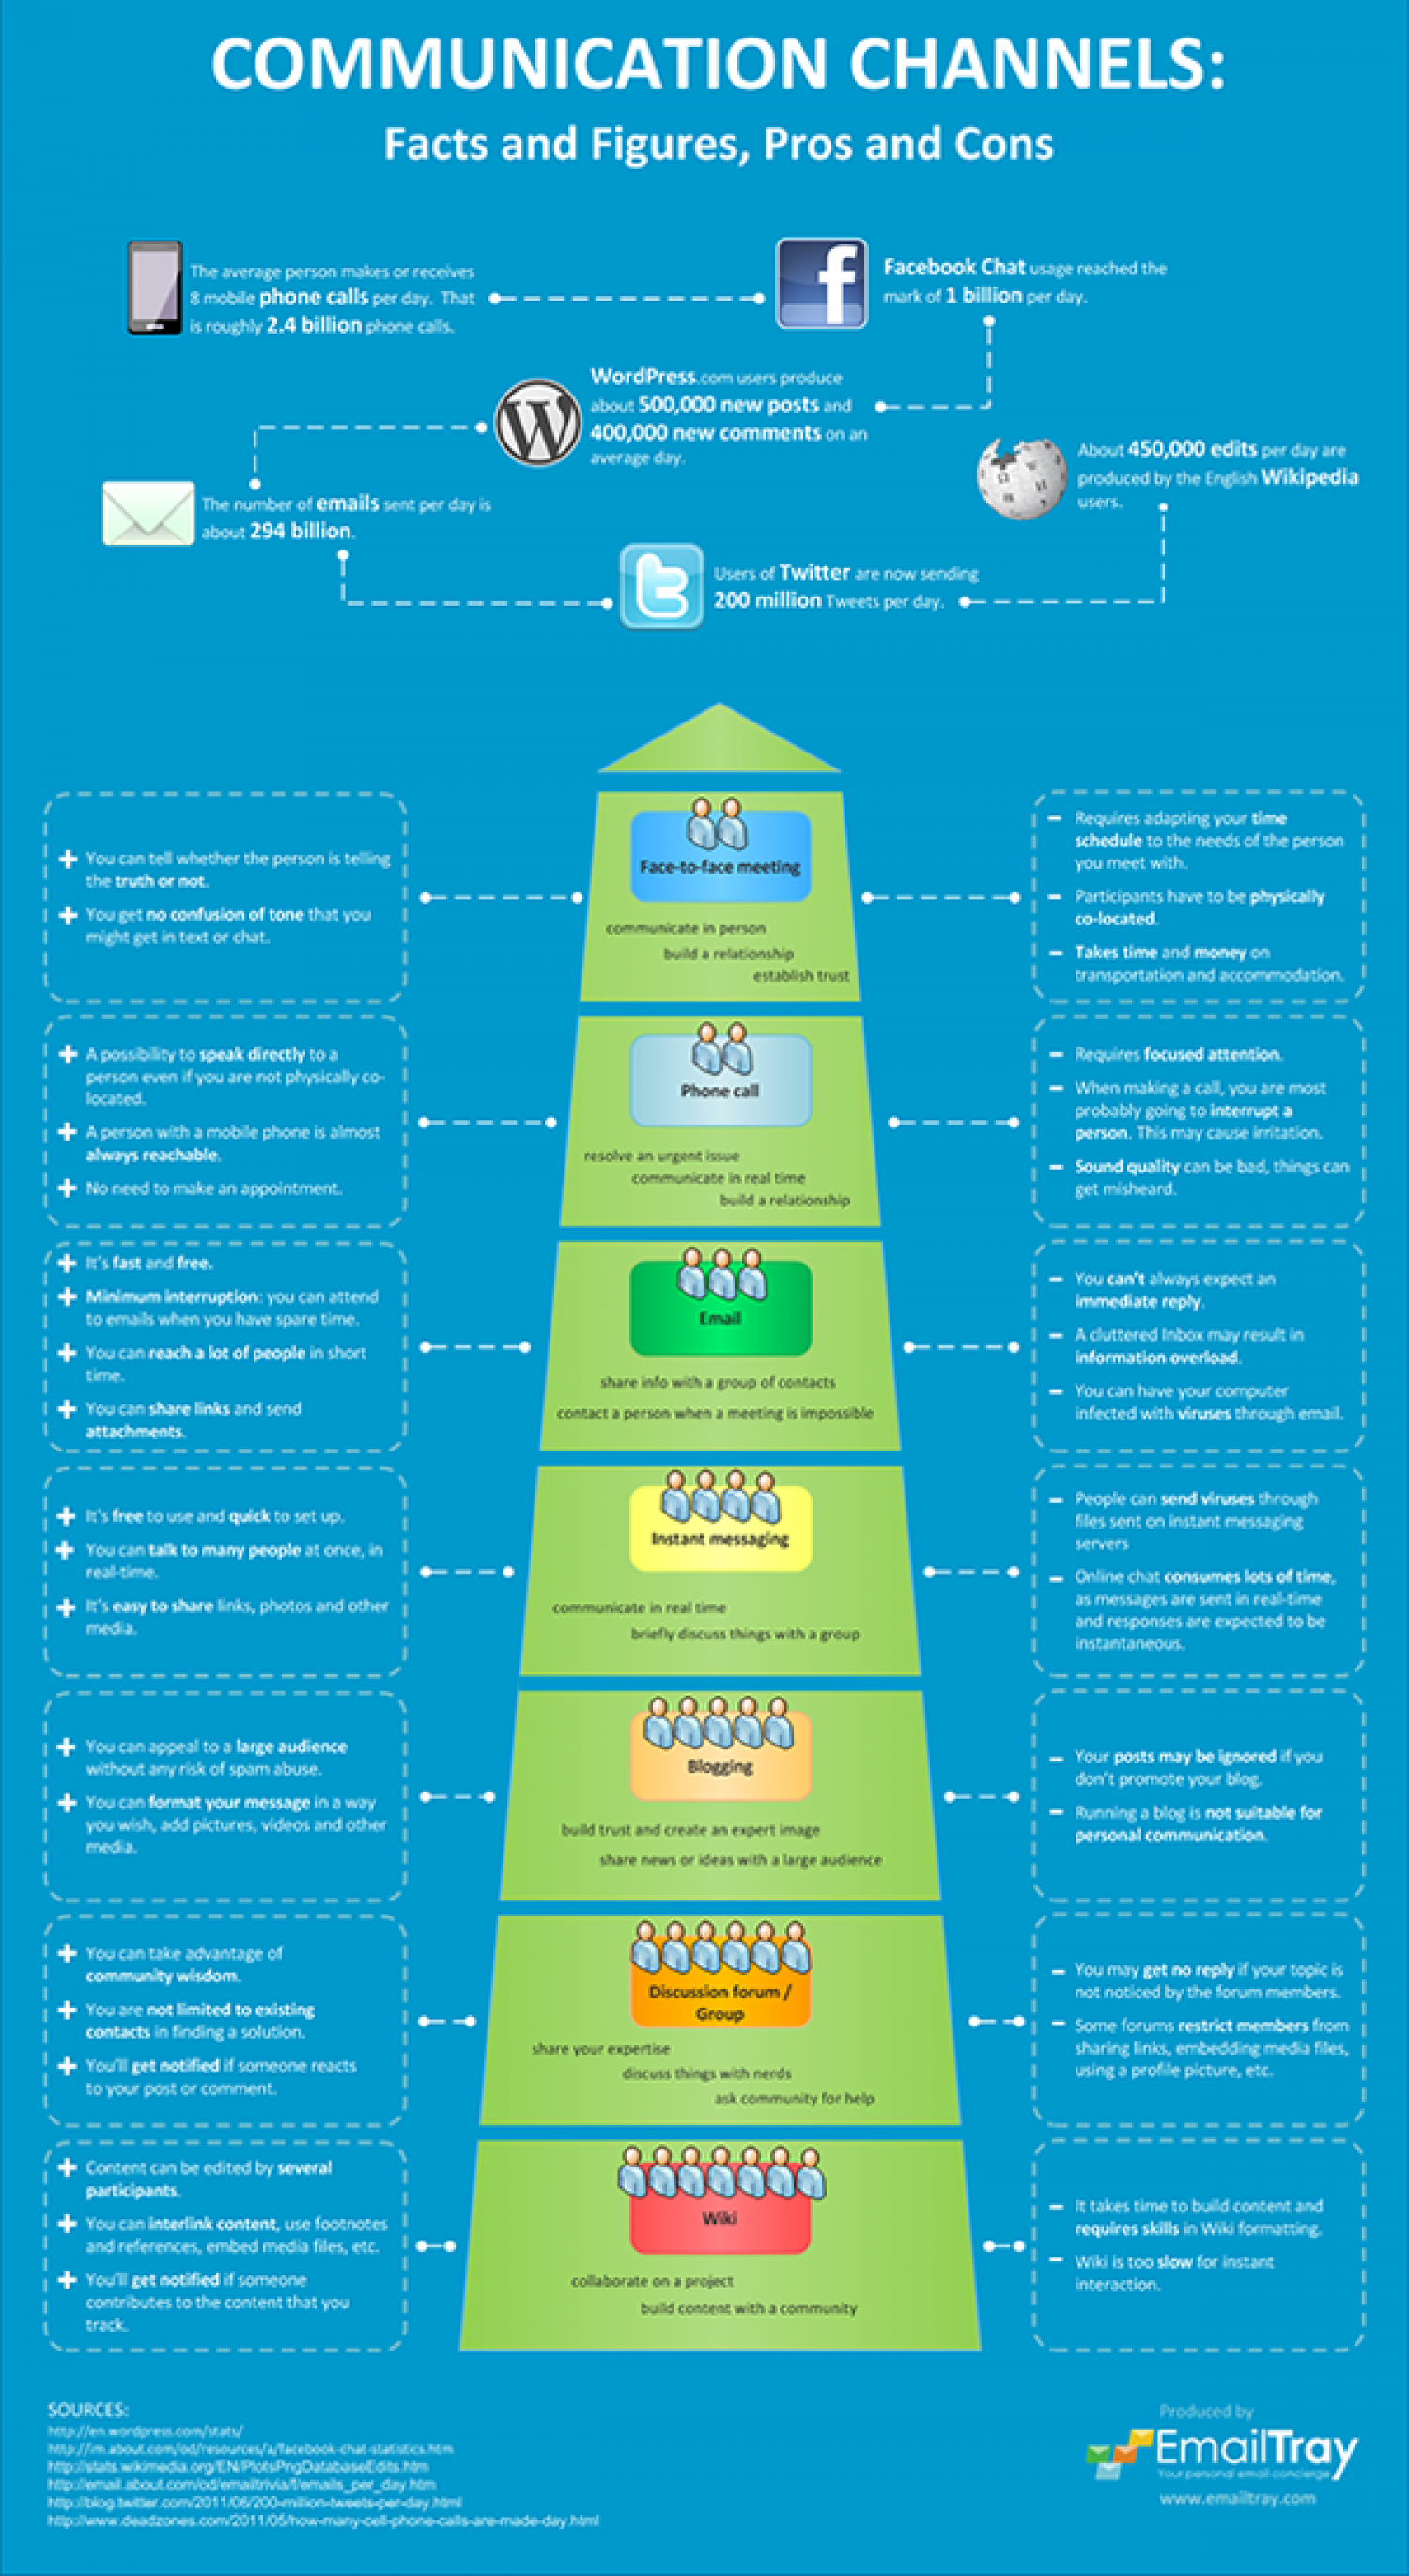 Communication Channels: Facts and Figures, Pros and Cons Infographic